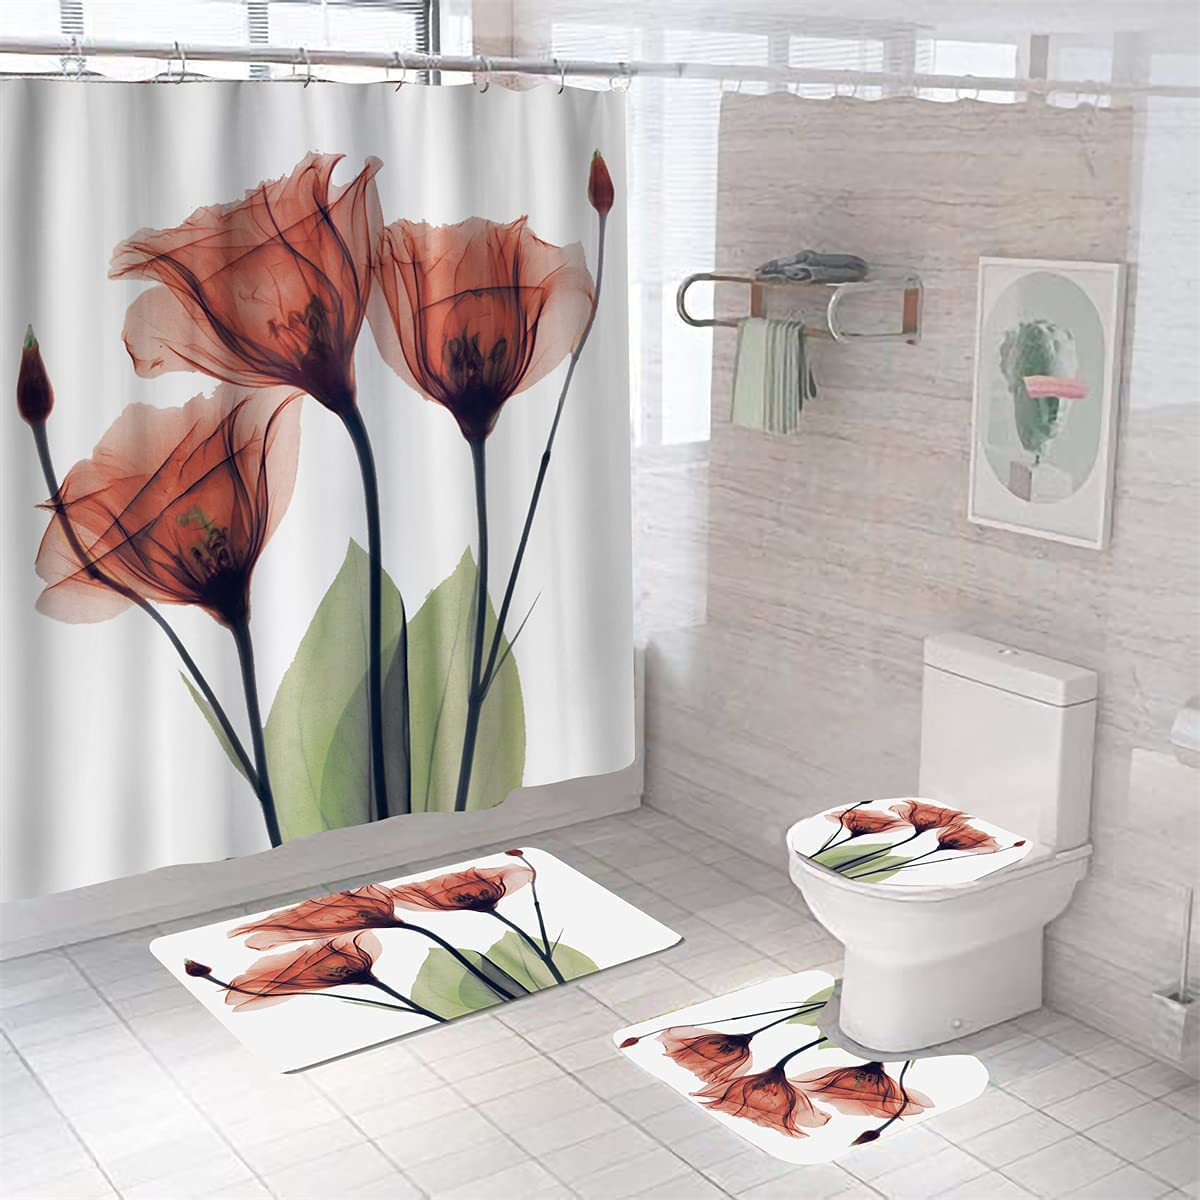 MrLYouth Botanical Max 76% OFF SALENEW very popular! Rust Red Tulip with Shower Non-S Sets Curtain